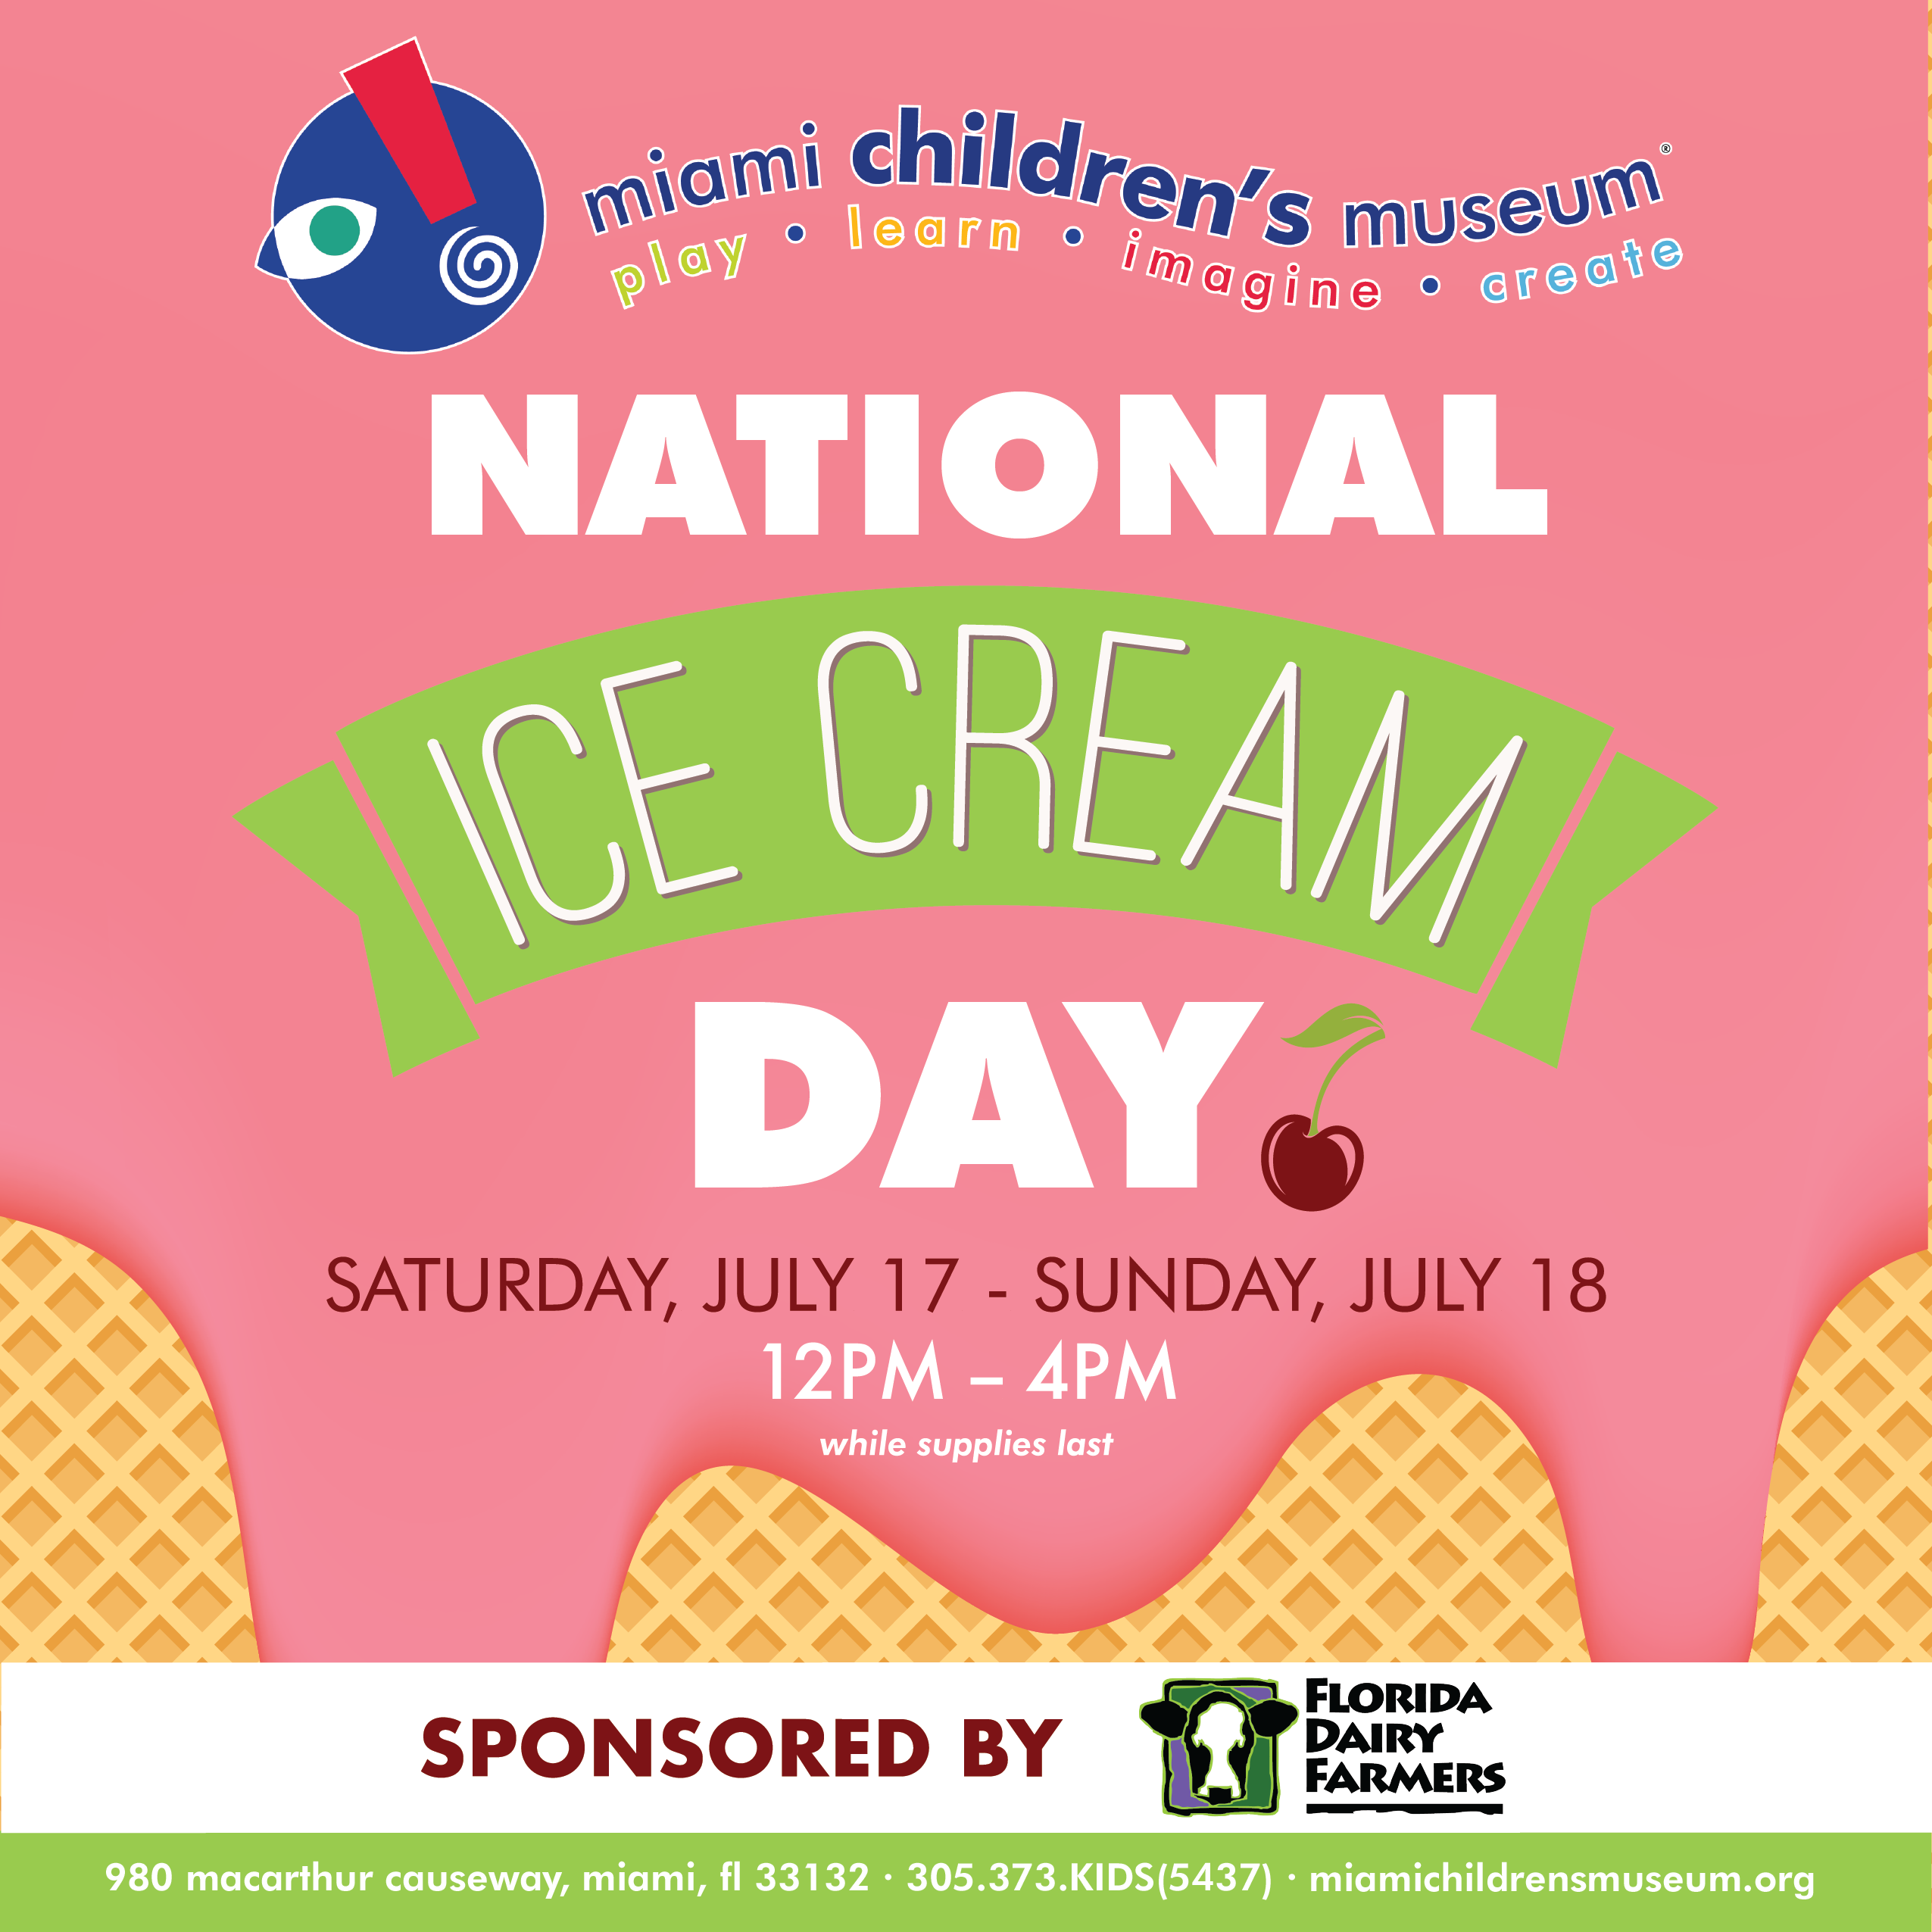 JULY 17-18, 2021: CELEBRATE NATIONAL ICE CREAM DAY AT MIAMI CHILDREN'S MUSEUM sponsored by Florida Dairy Farmers